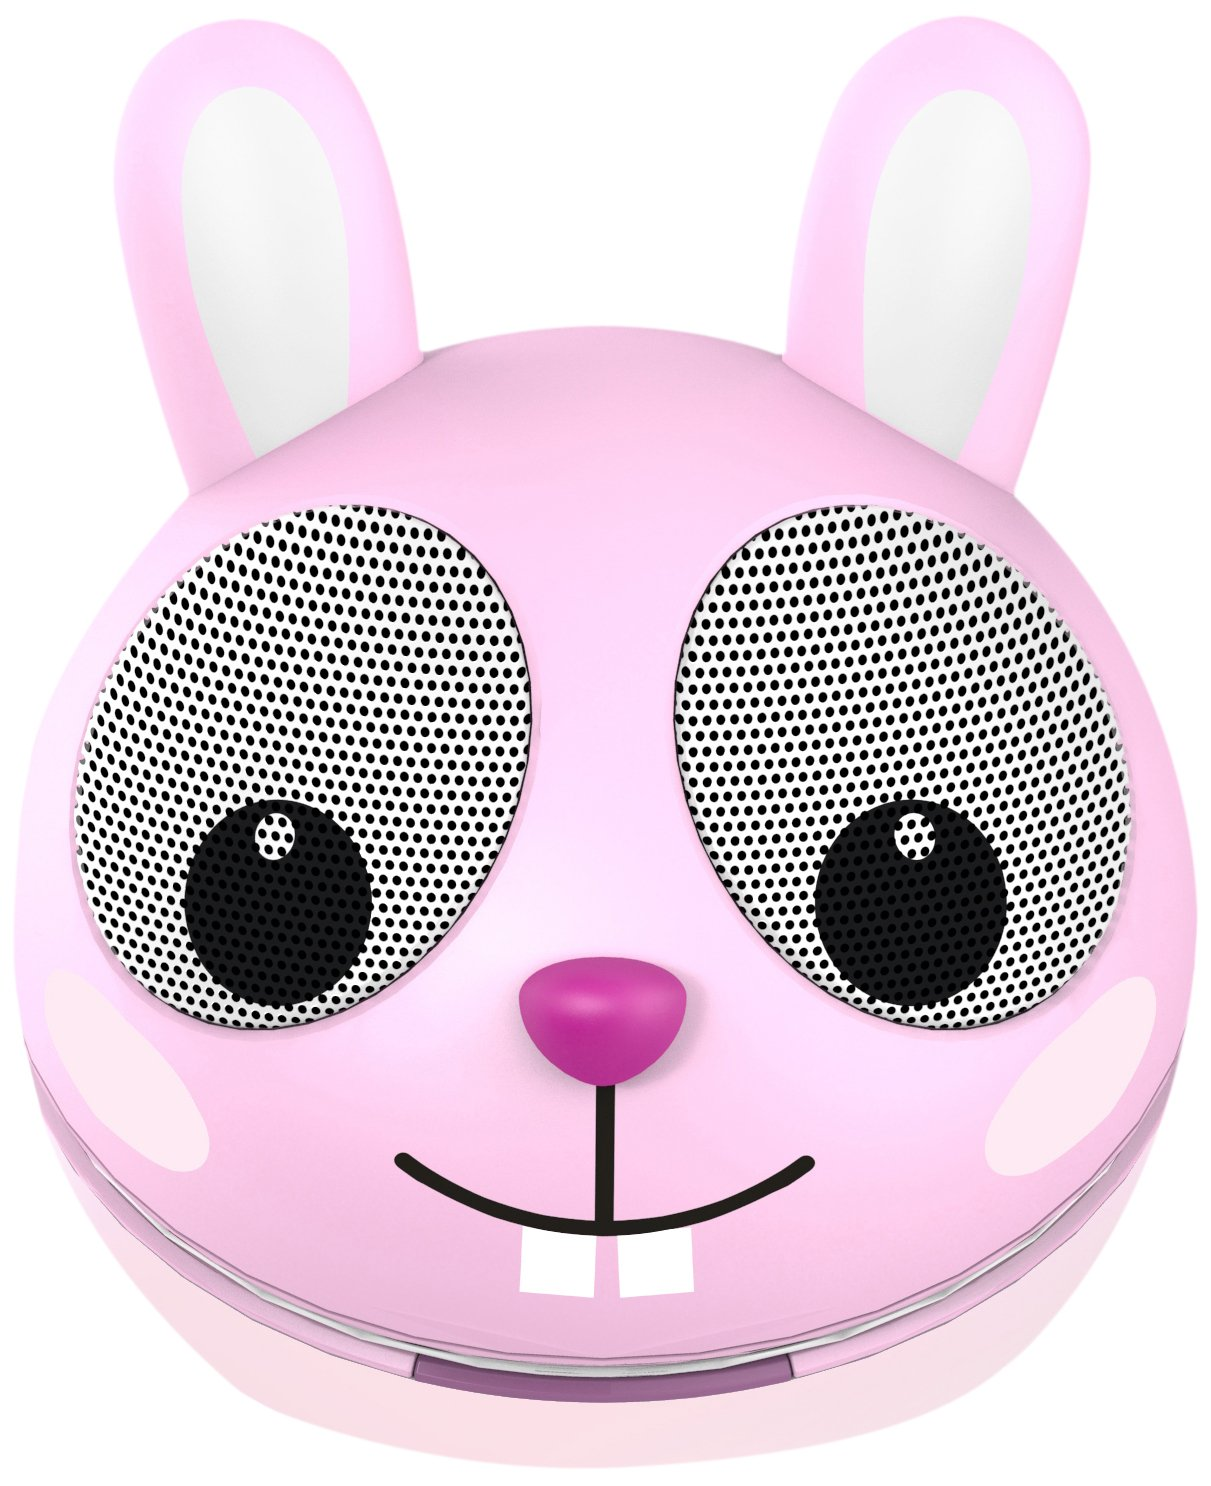 Zoo-Tunes Portable Mini Character Speakers for MP3 Players, Tablets, Laptops etc. (Rabbit) by Impecca